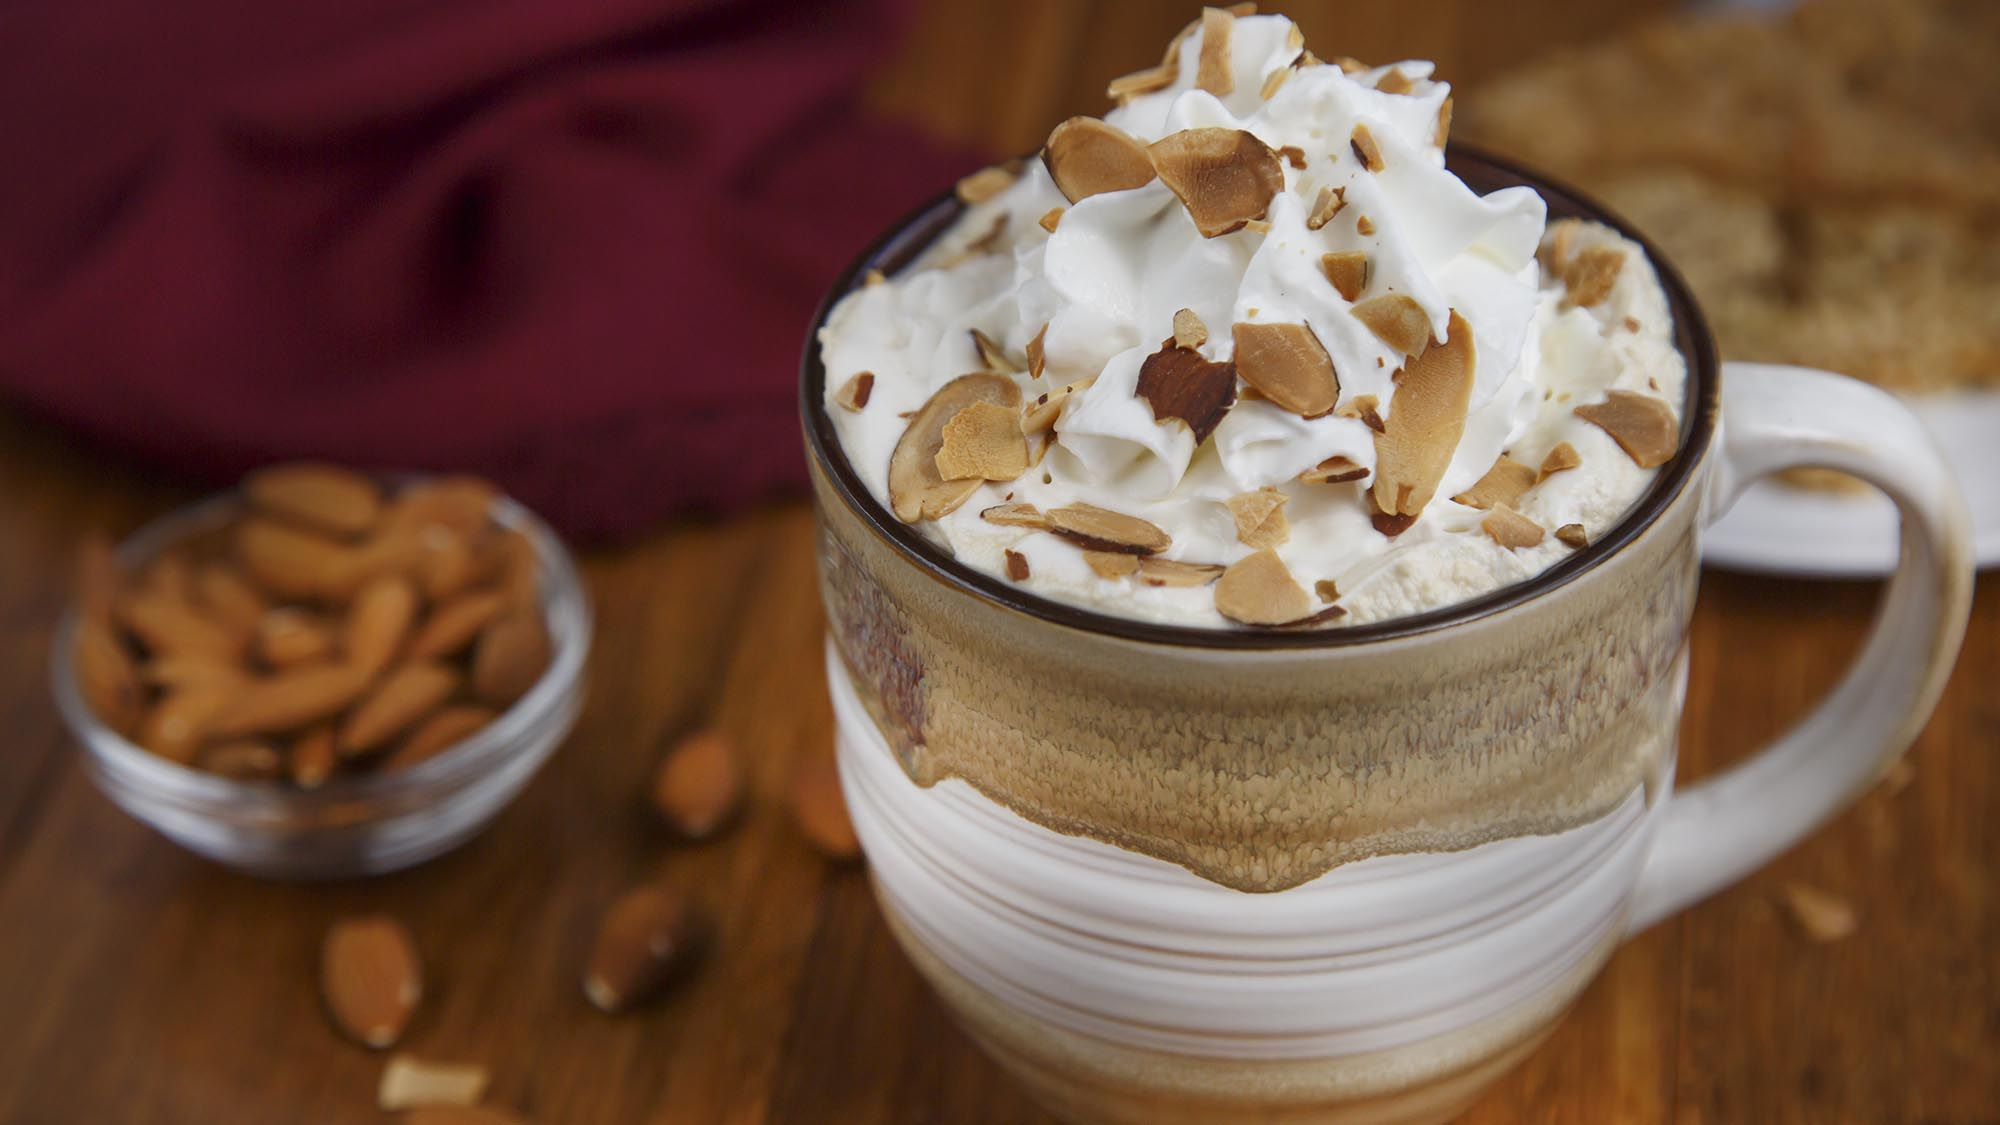 McCormick Toasted Almond Latte